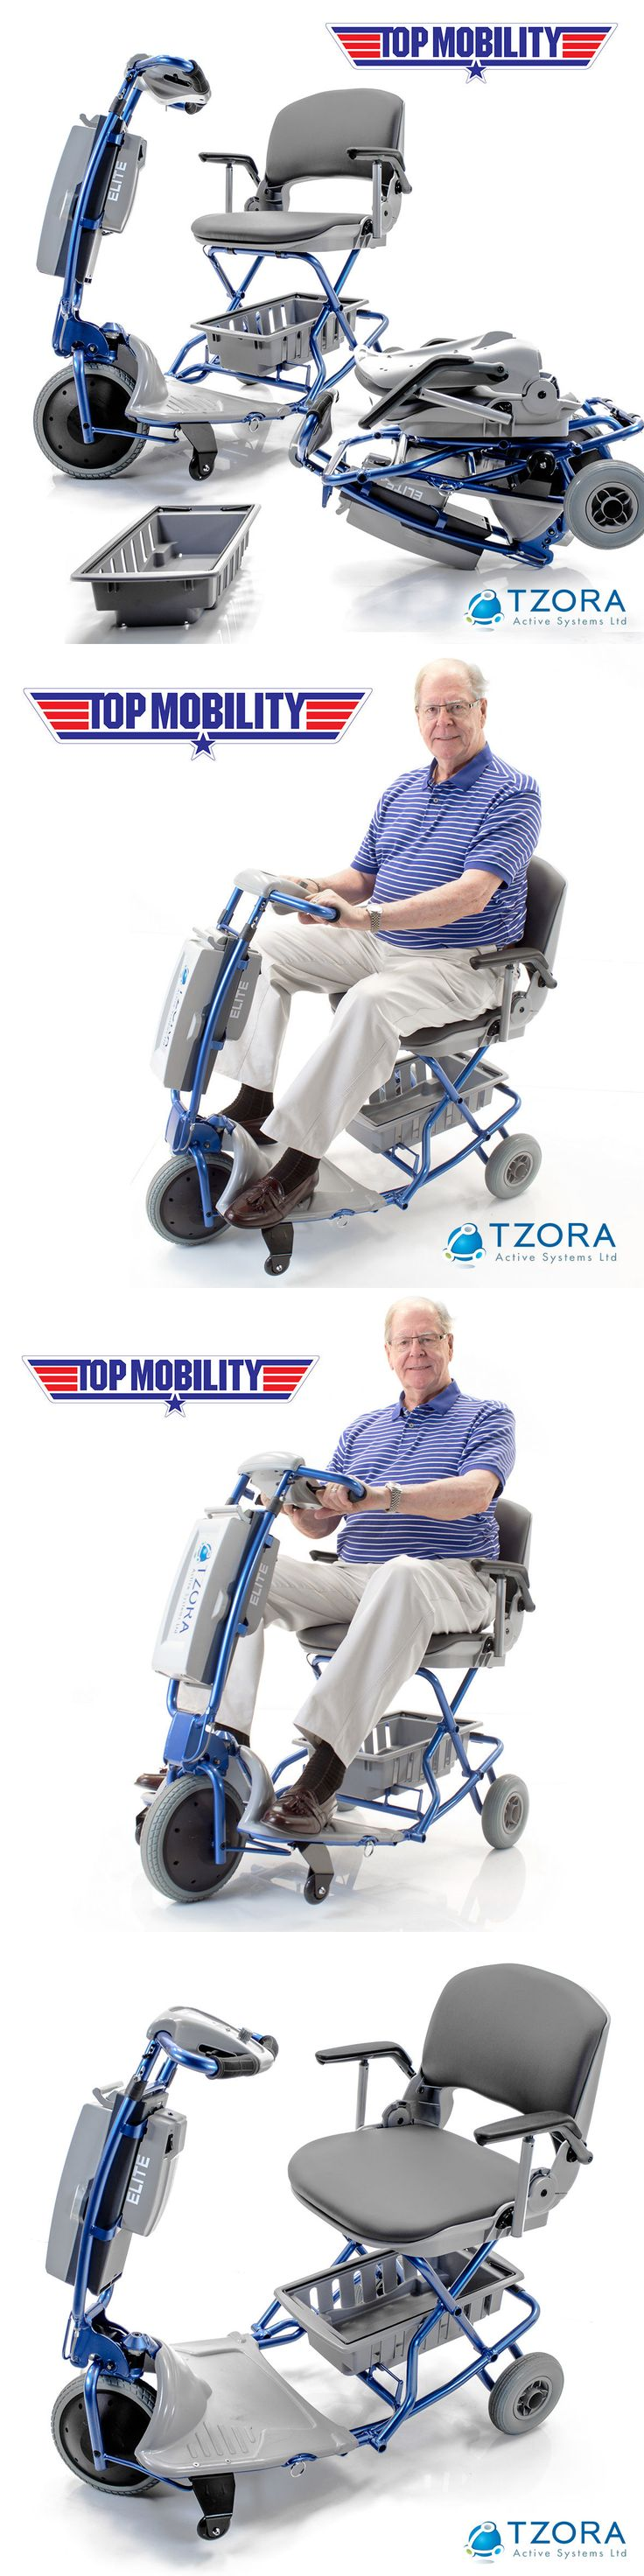 Mobility Scooters: Tzora Elite Easy Travel Folding Portable Mobility Scooter New + Free Accessories BUY IT NOW ONLY: $1578.0